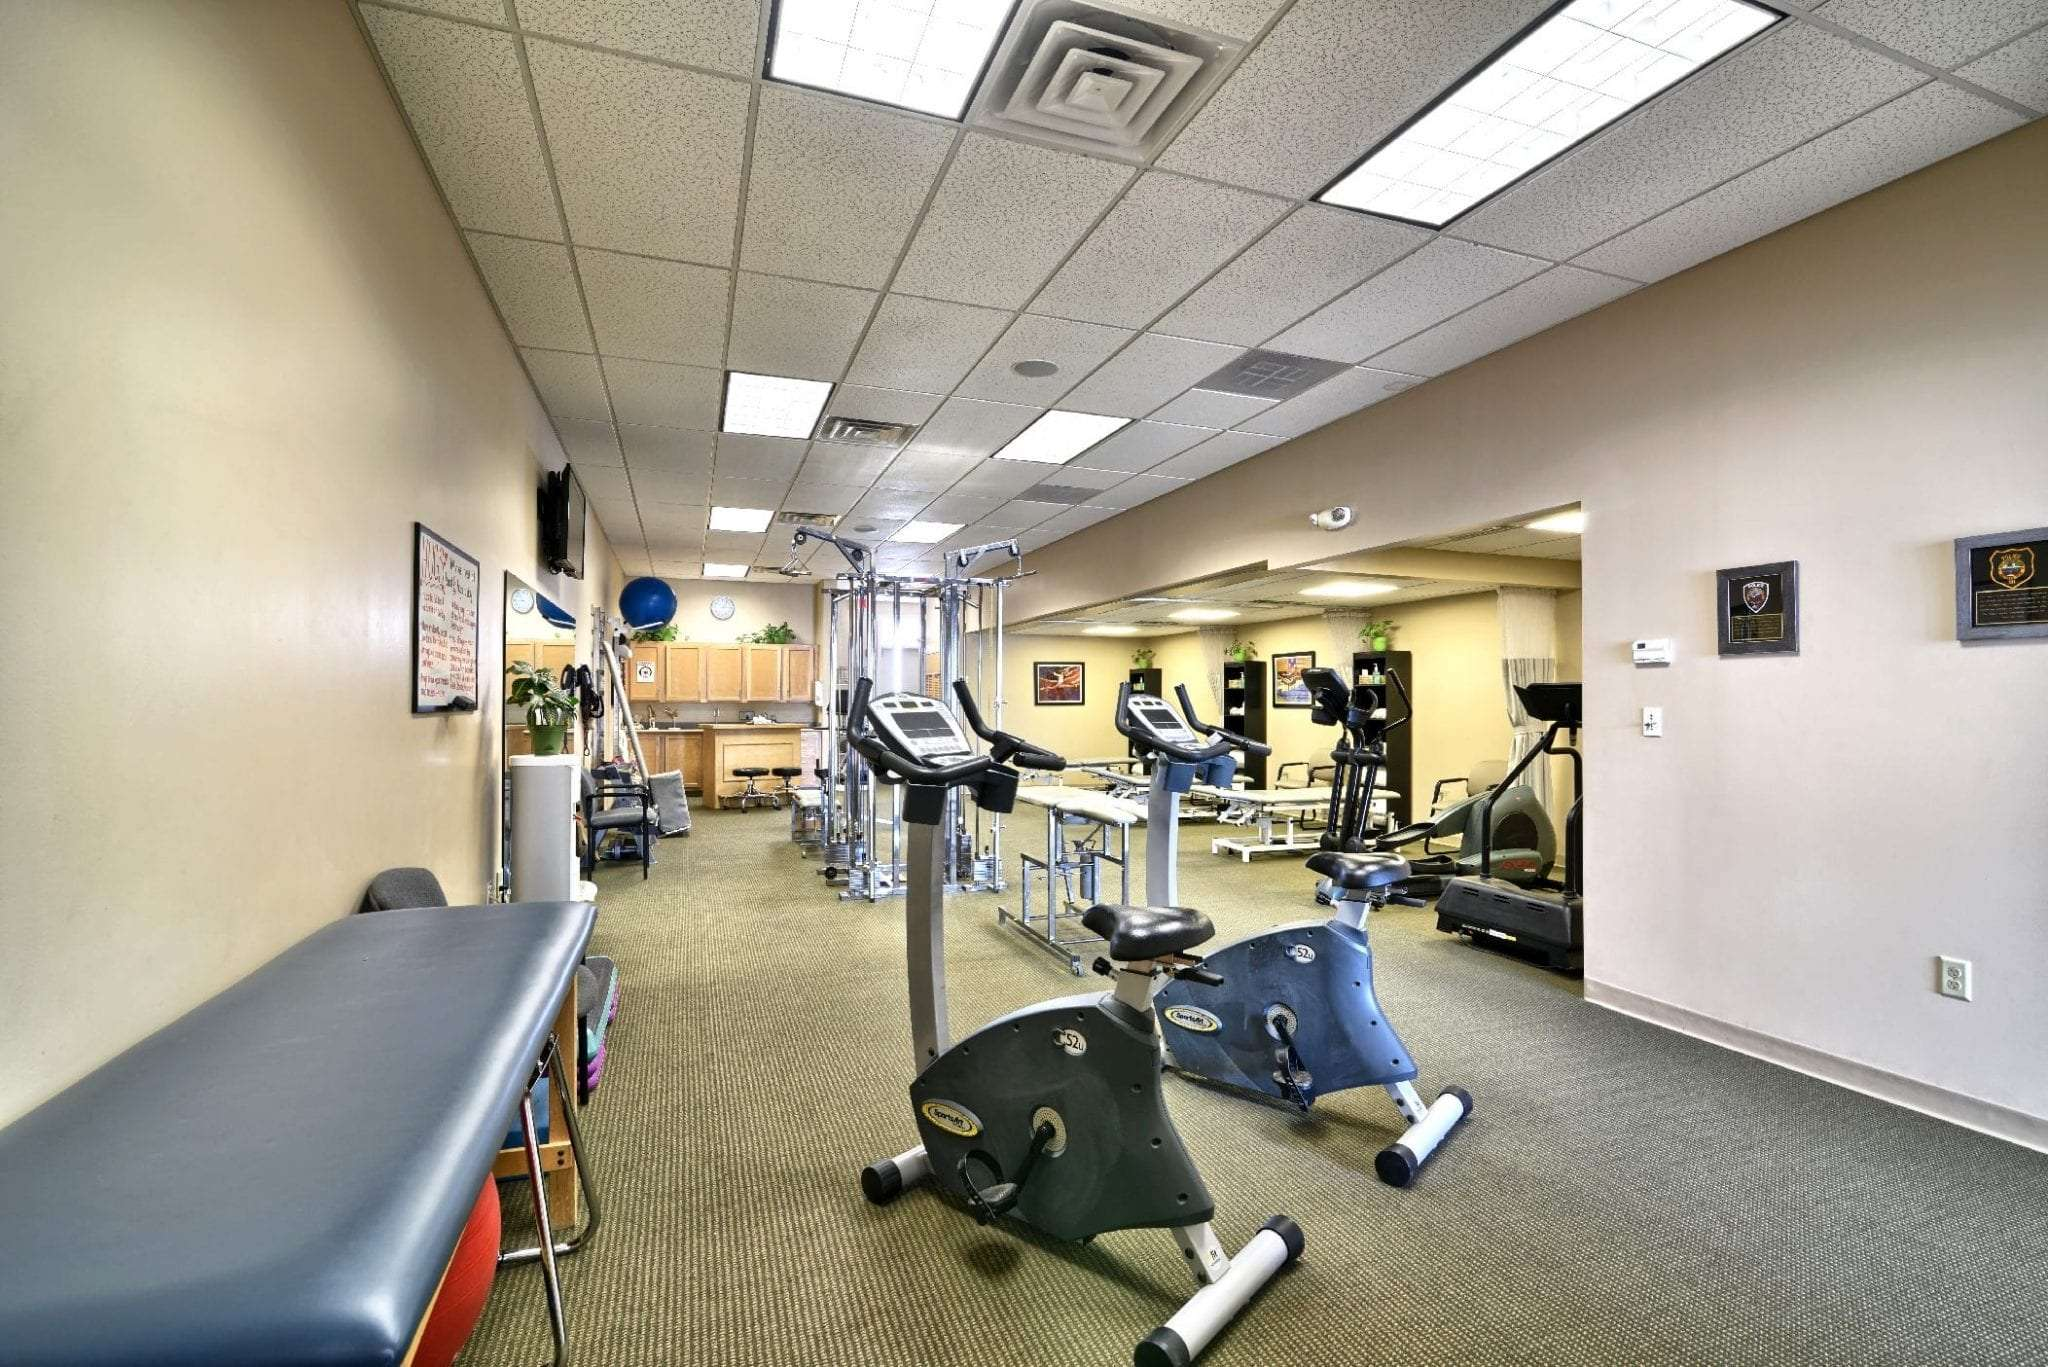 This image shows various equipment used for physical therapy at our clinic in Epping, New Hampshire.